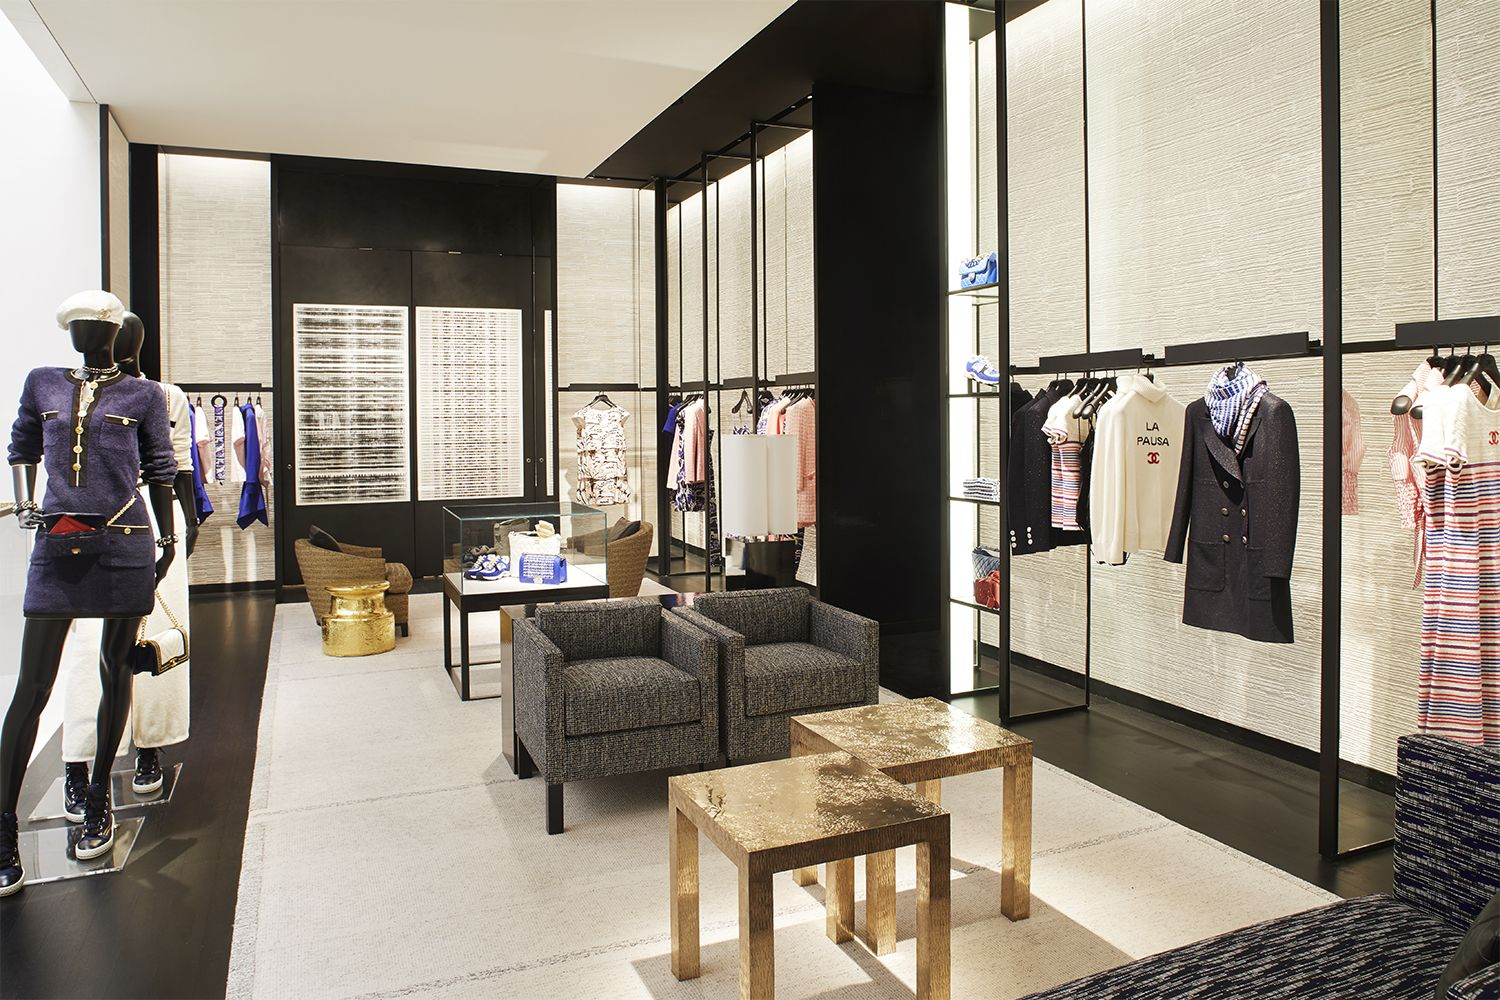 The store will house two Chanel's ready-to-wear salons including a section specifically for knitwear.